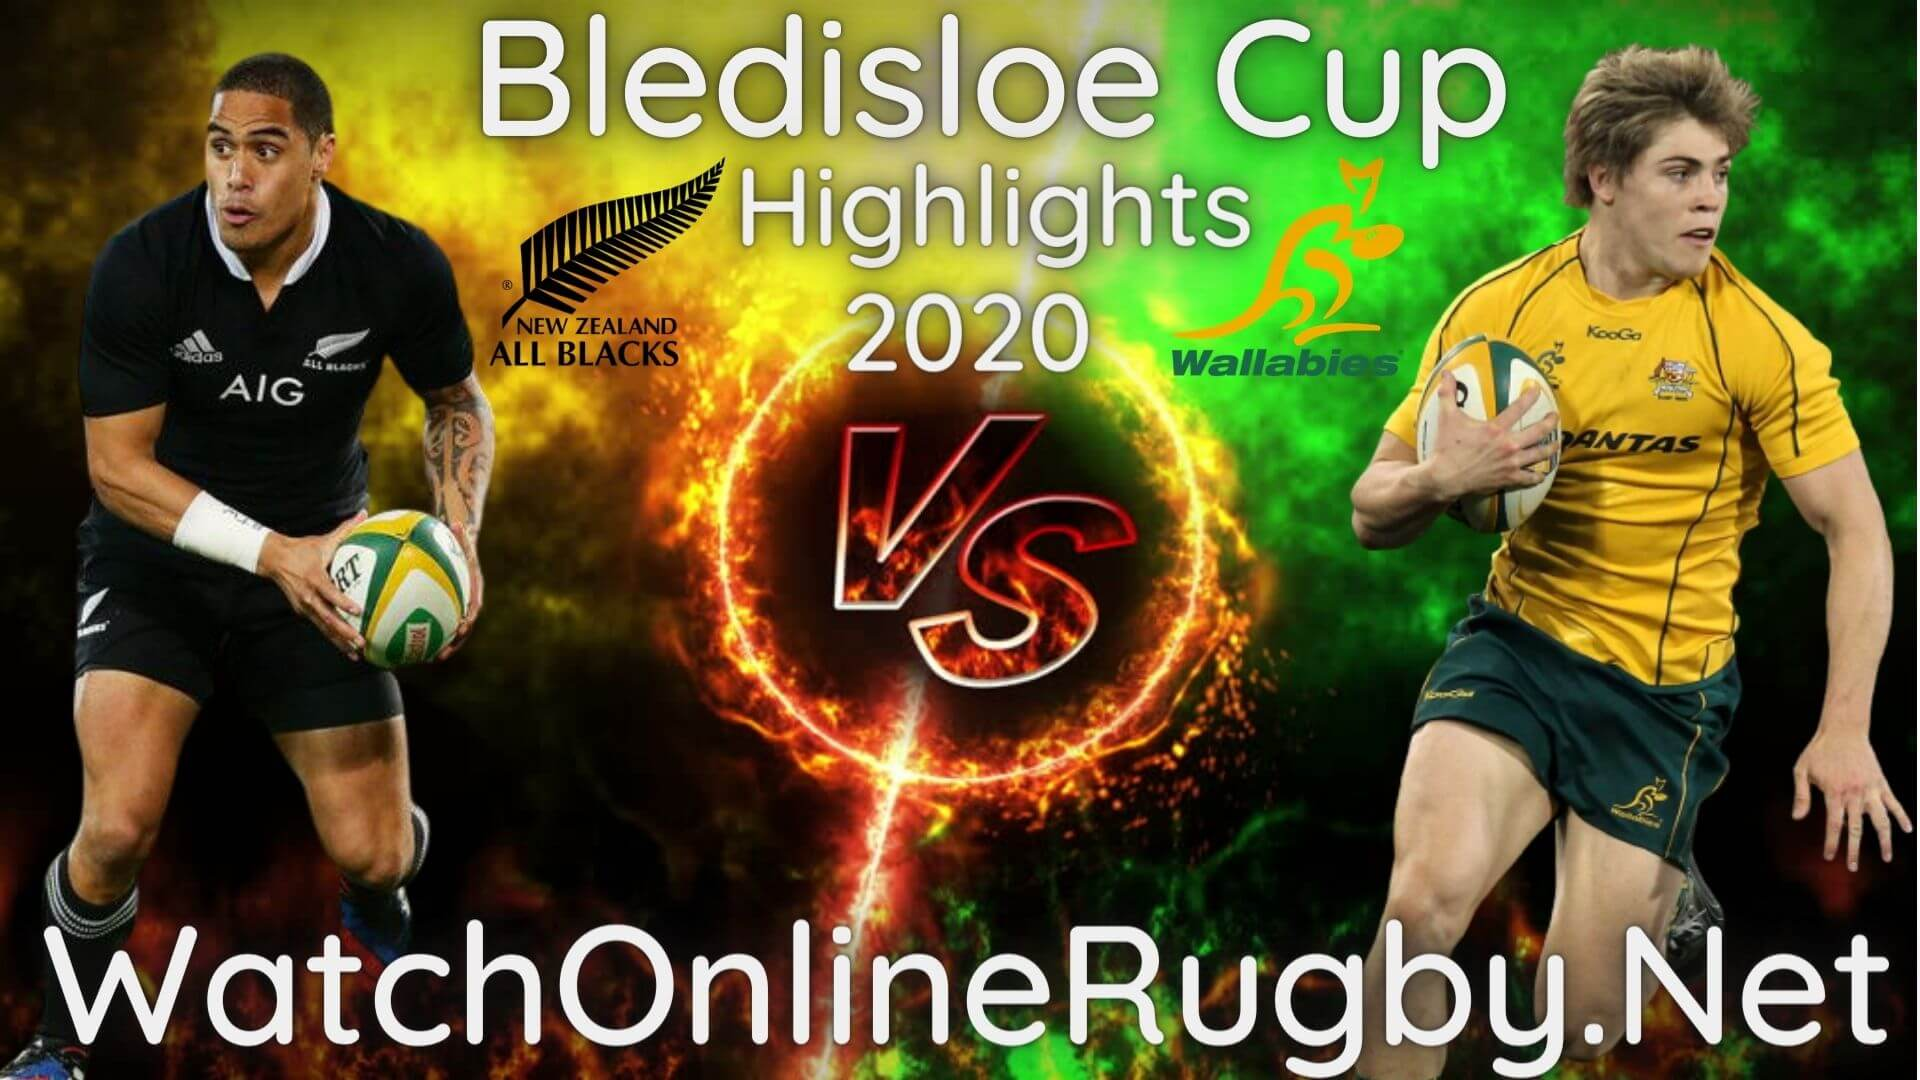 New Zealand Vs Australia Highlights 2020 Bledisloe Cup